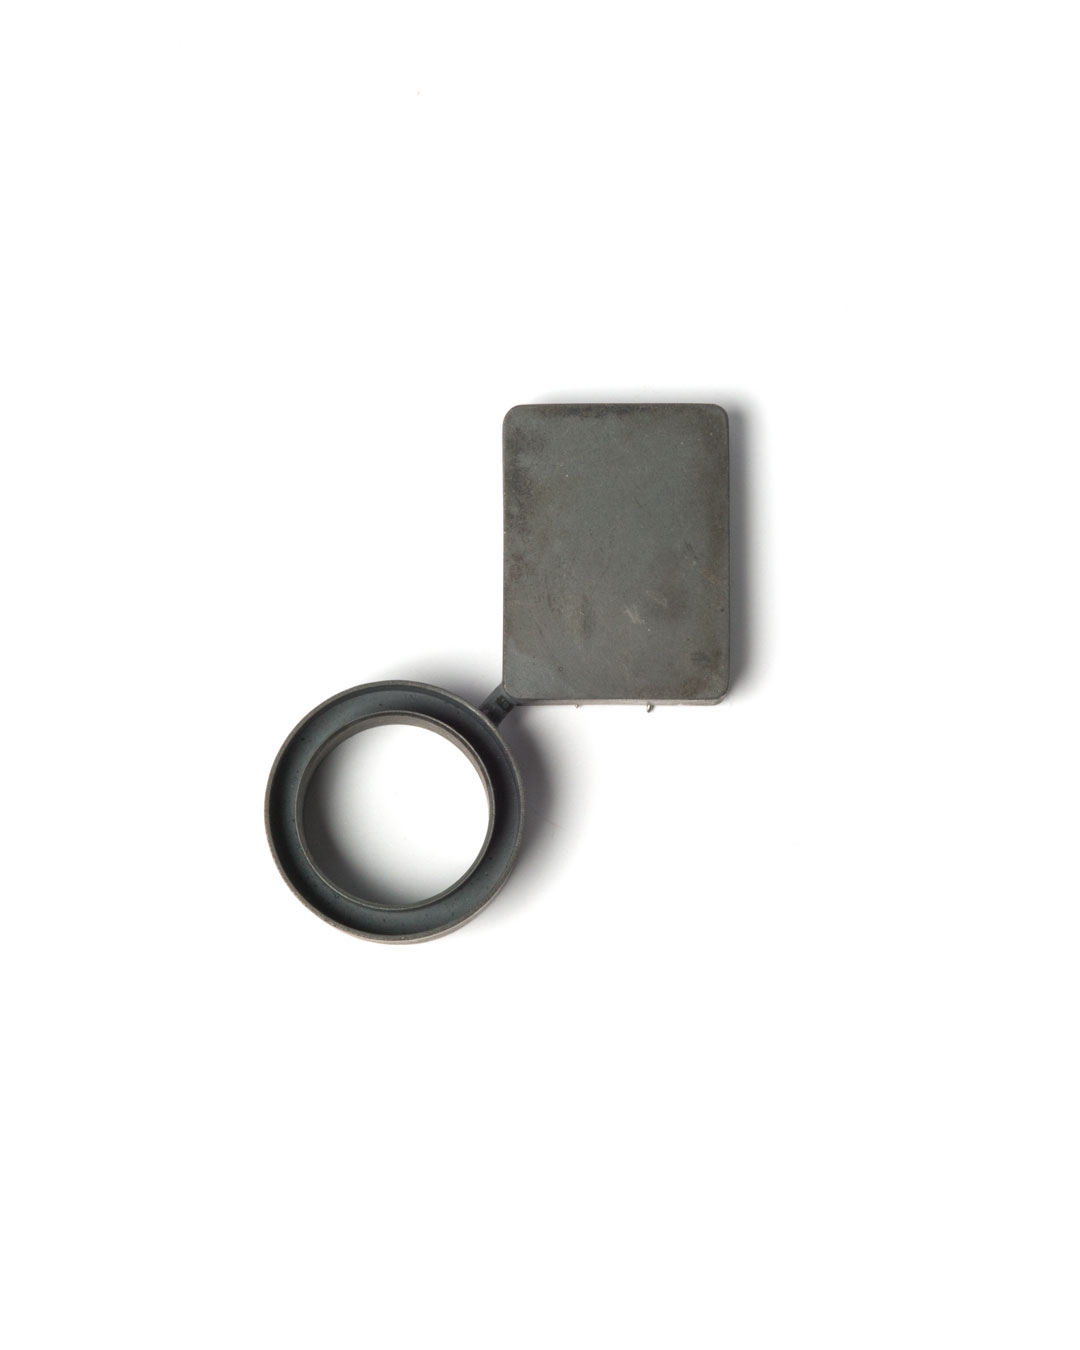 Winfried Krüger, untitled, 2010, brooch; oxidised silver, glass, 90 x 60 mm, €1940